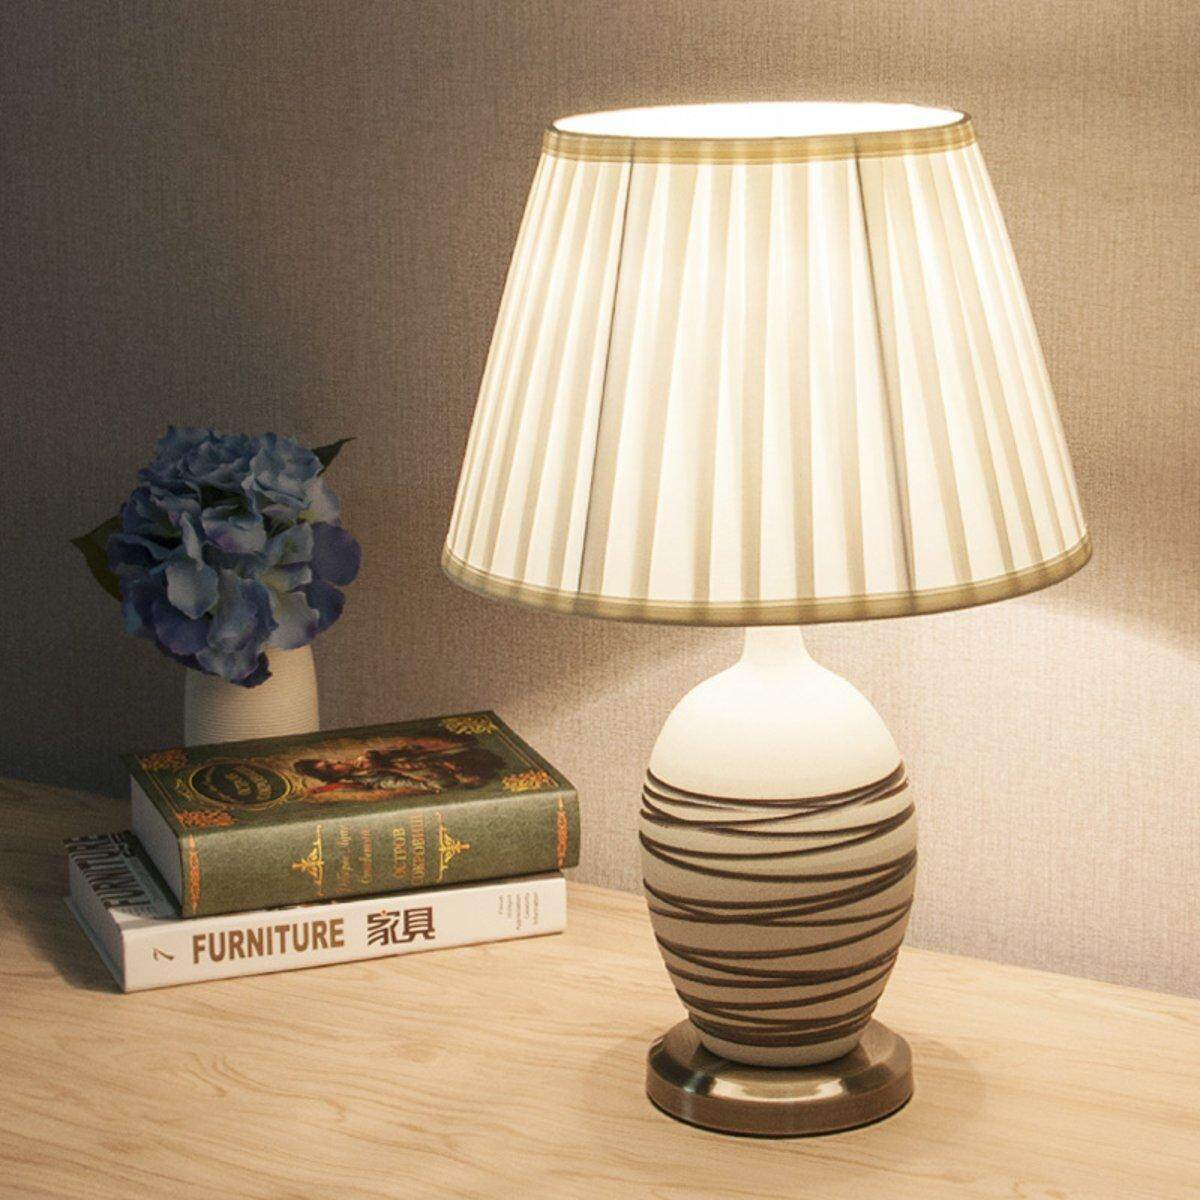 6 To 20 Fabric Box Pleat Lamp Shade Table Light Lampshade Mink Cream Ivory  220mm By Glimmer.